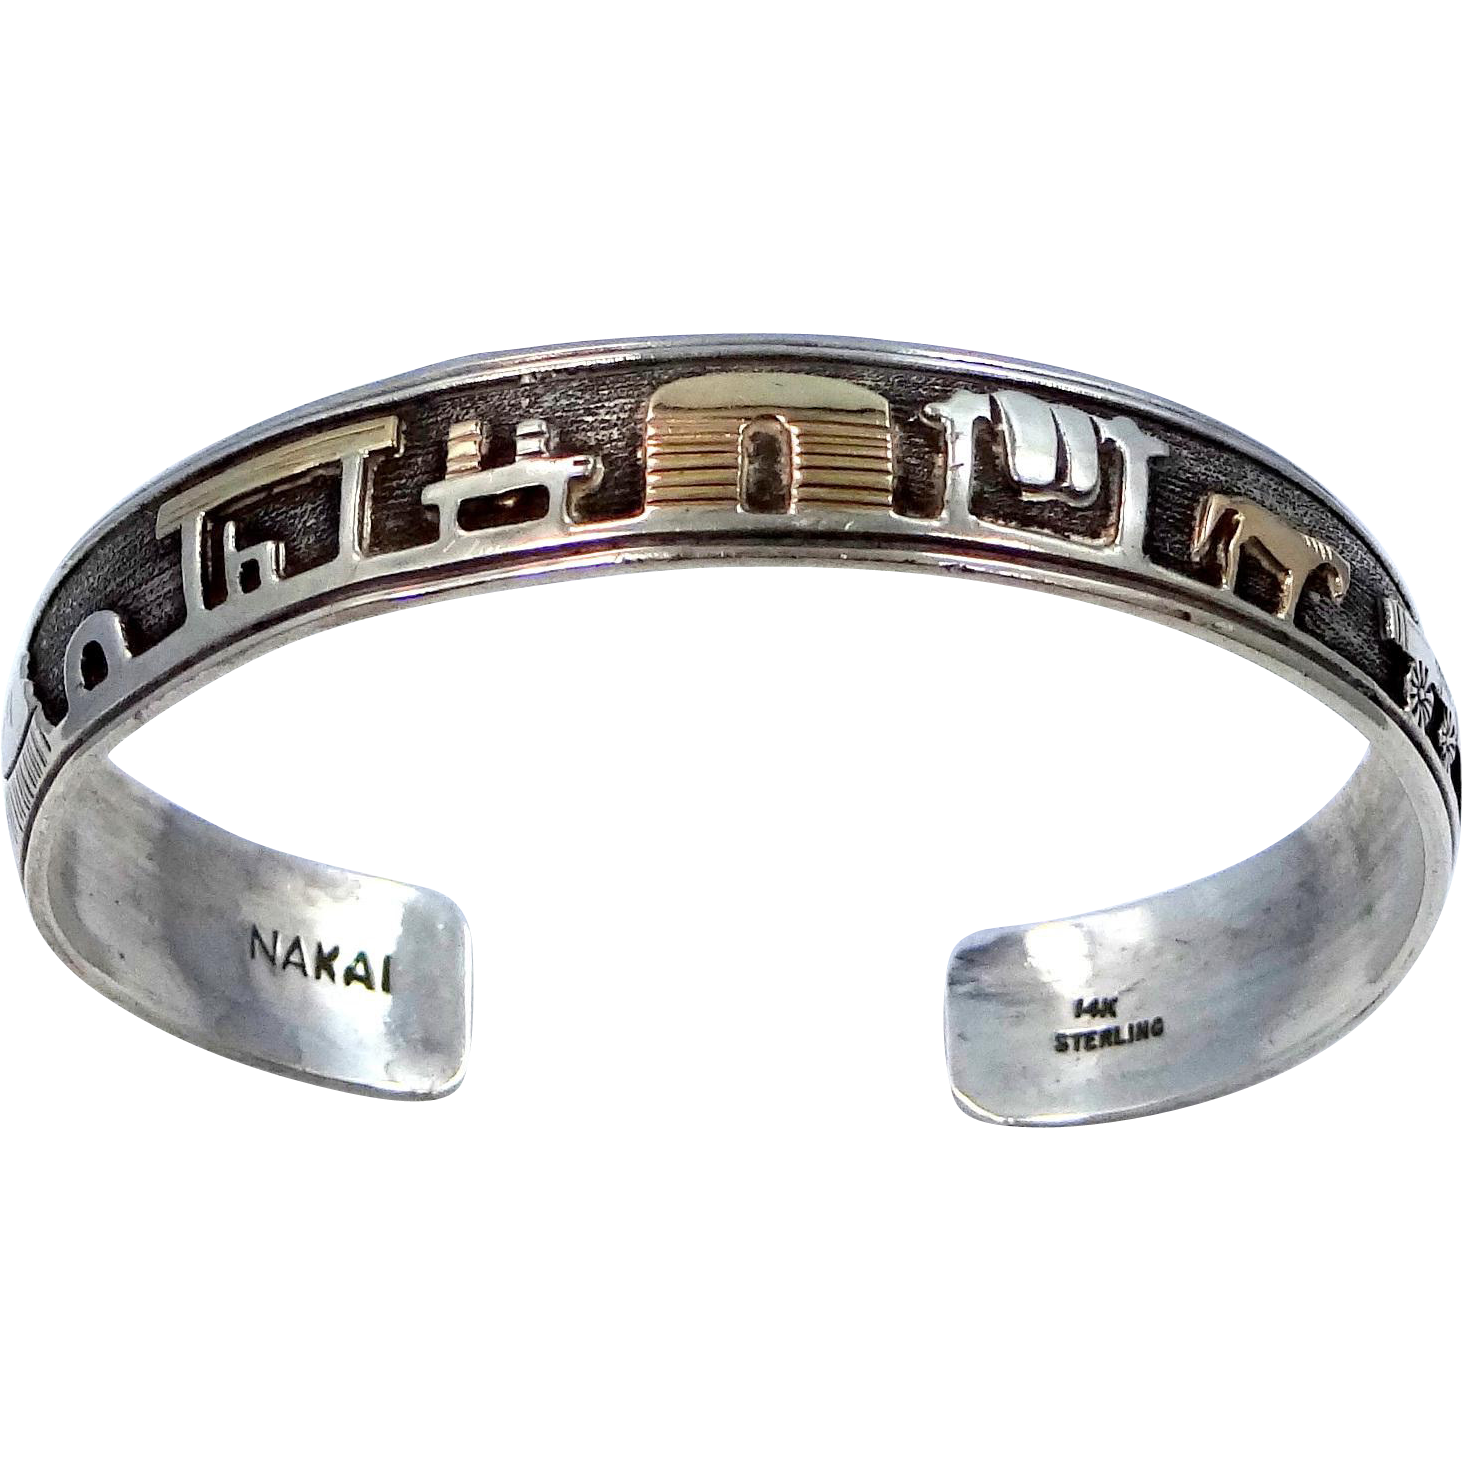 14k Gold and Sterling Silver Nakai Storyteller Navajo Cuff Bracelet